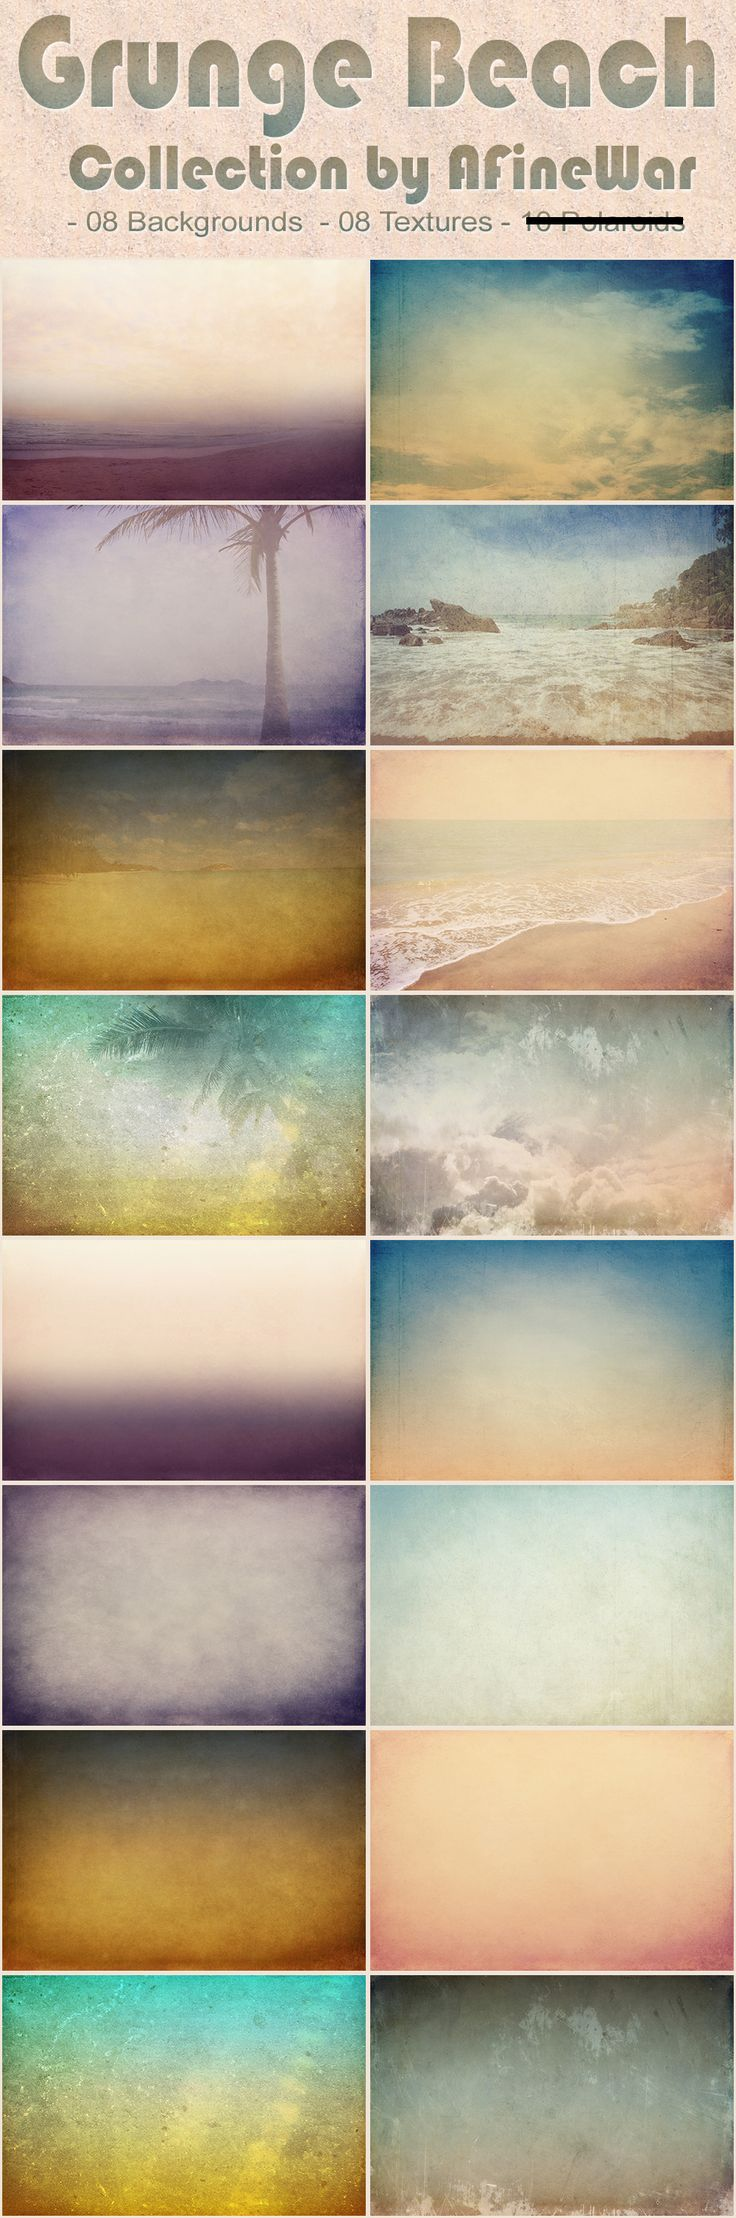 Texture bank 8 shiny blue grungy deviant textures - Grunge Beach Collection Textures By Afinewar On Deviantart Free Textures